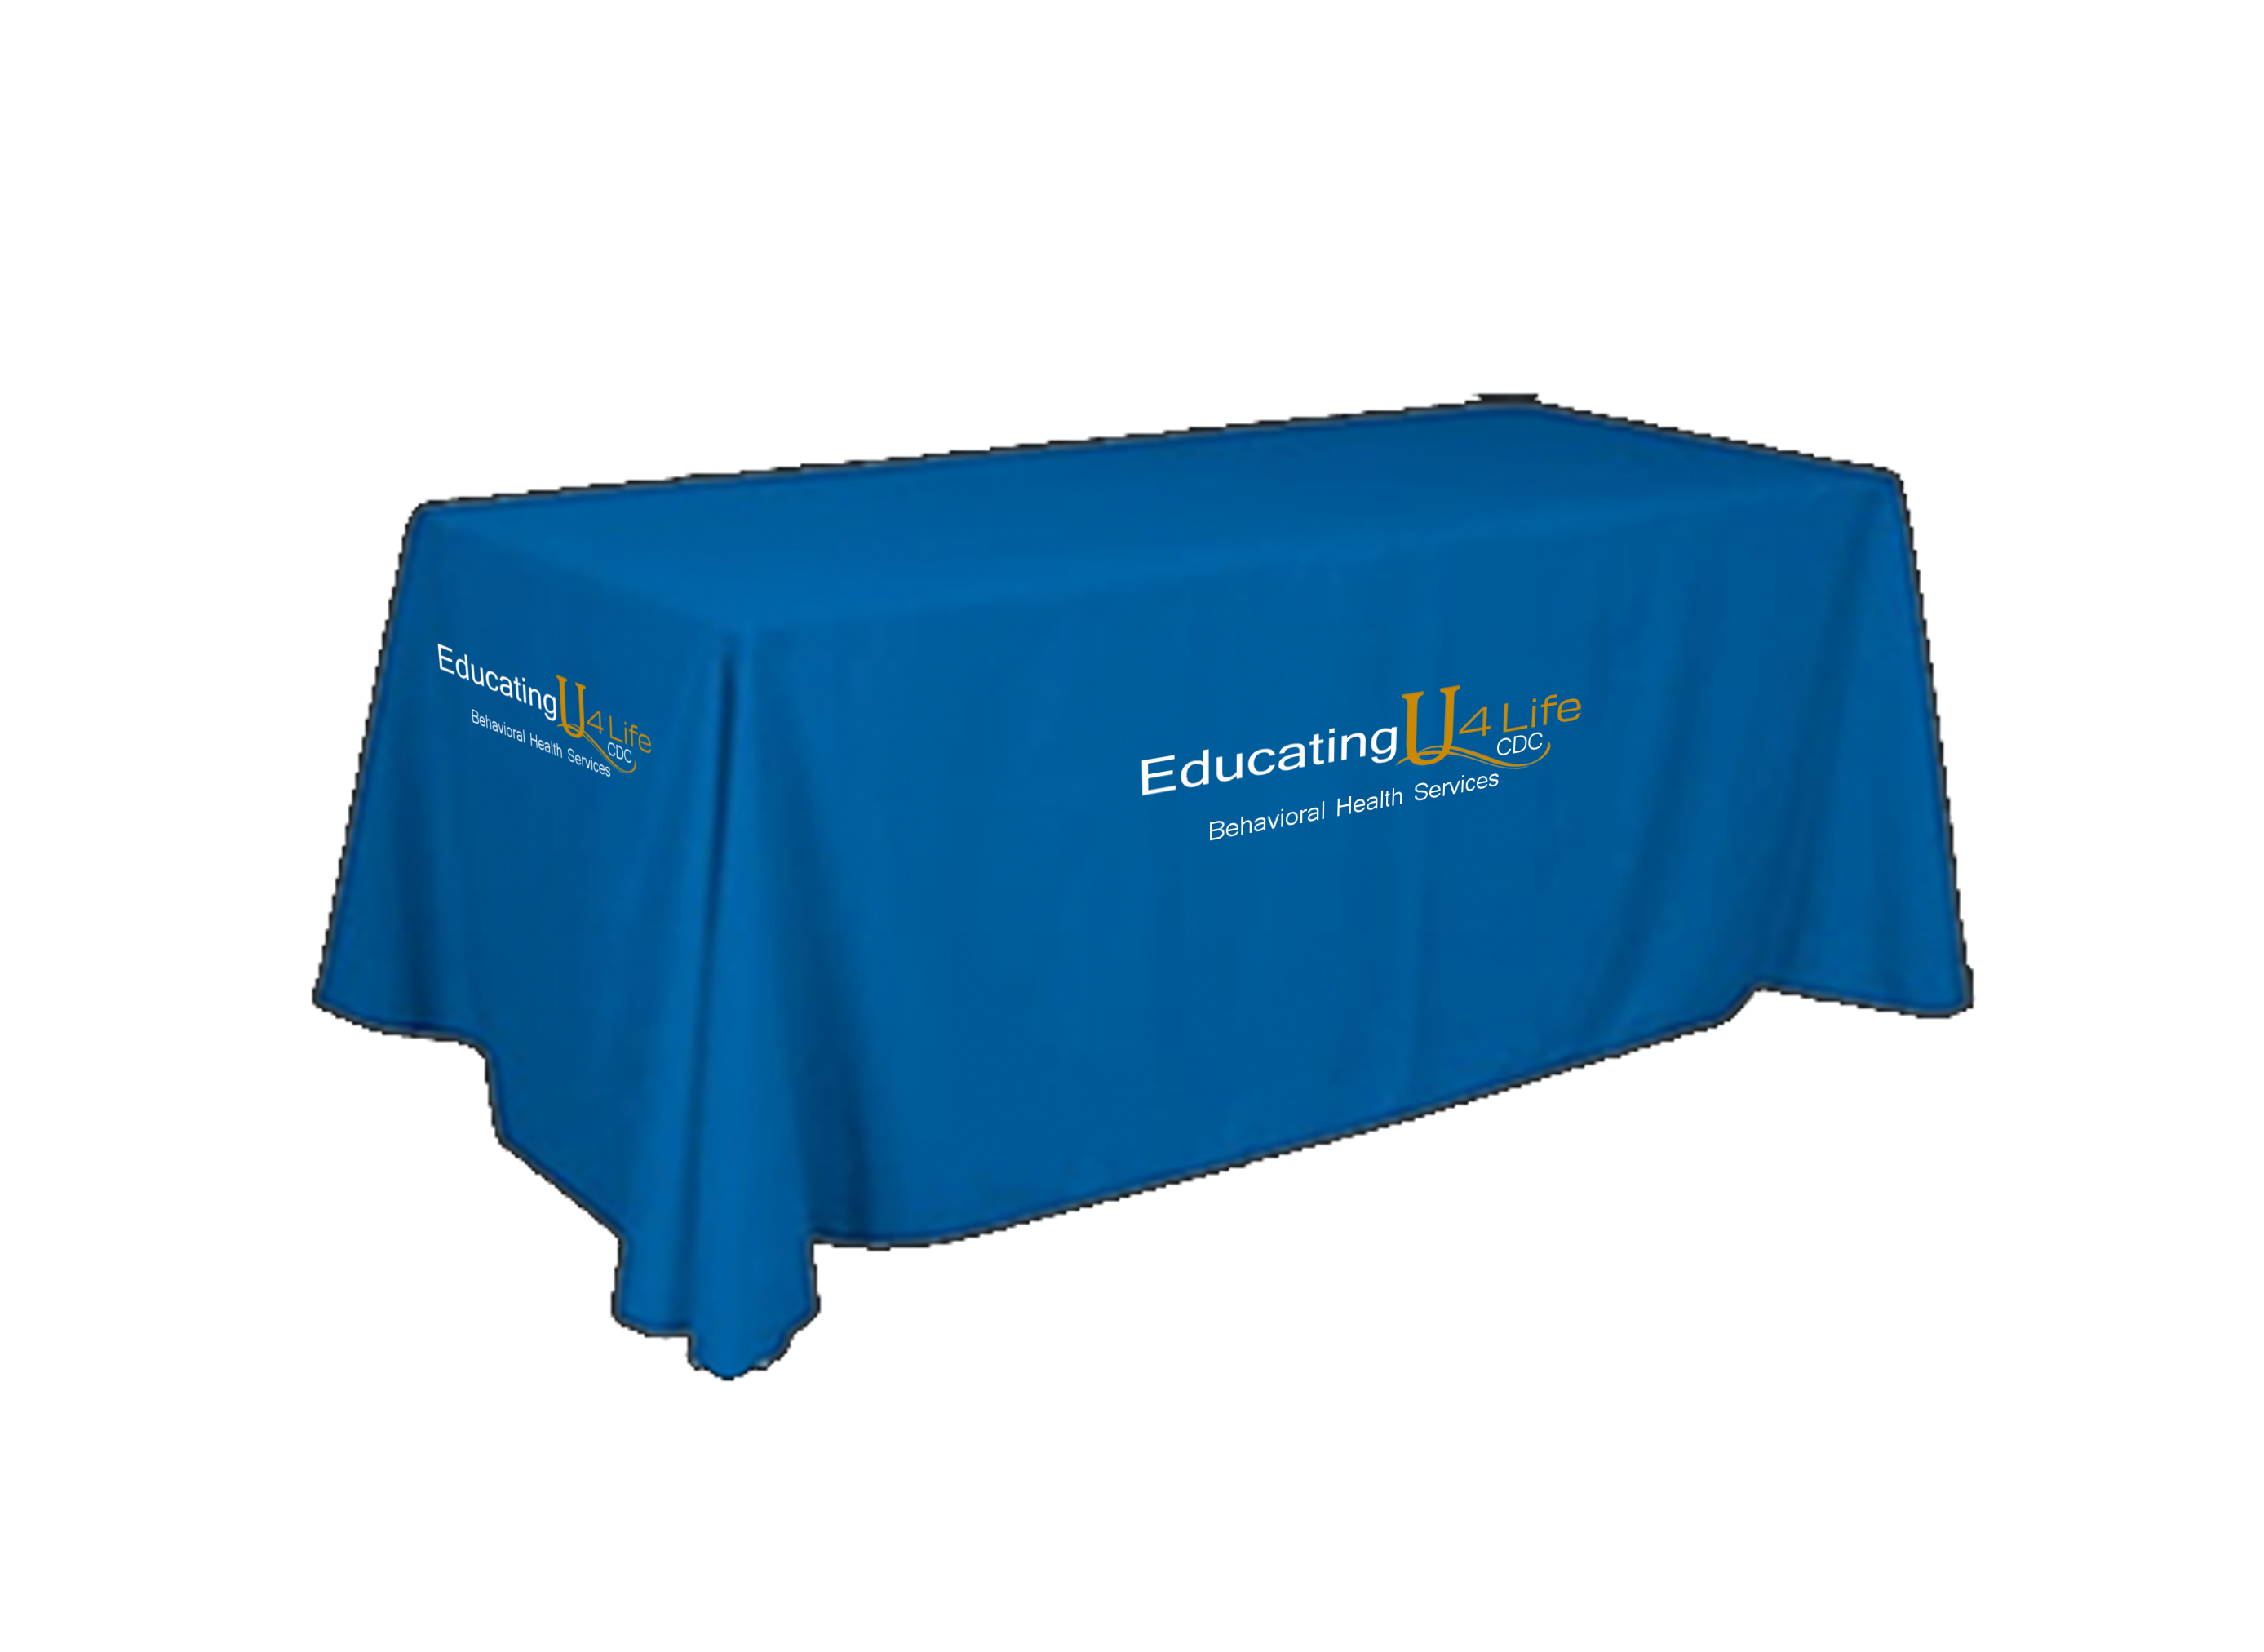 educatingu4life table throw